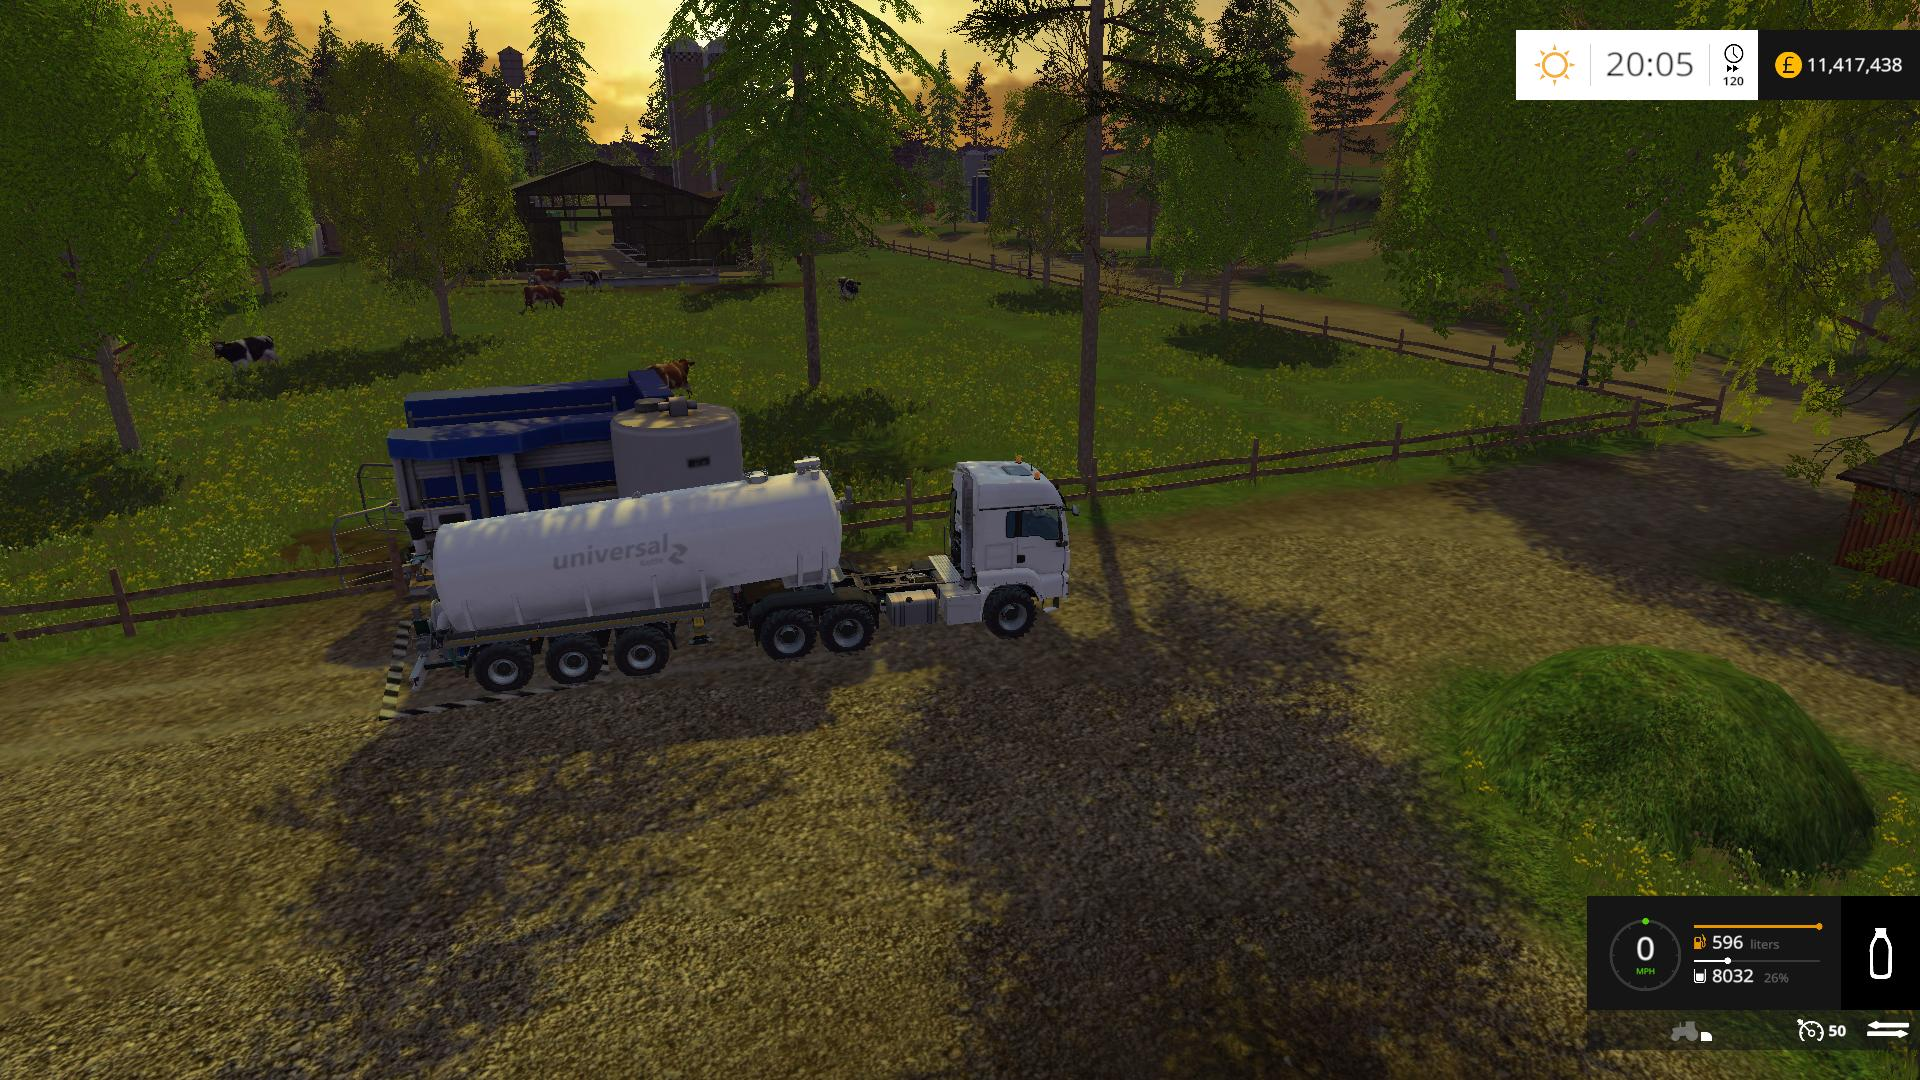 RINGWOODS V3 DUAL MAPS BY STEVIE • Farming simulator 19, 17, 15 mods on quad maps, classic maps, lg maps, bunker hill maps, structure maps, landslide maps, zoom maps, fusion maps,